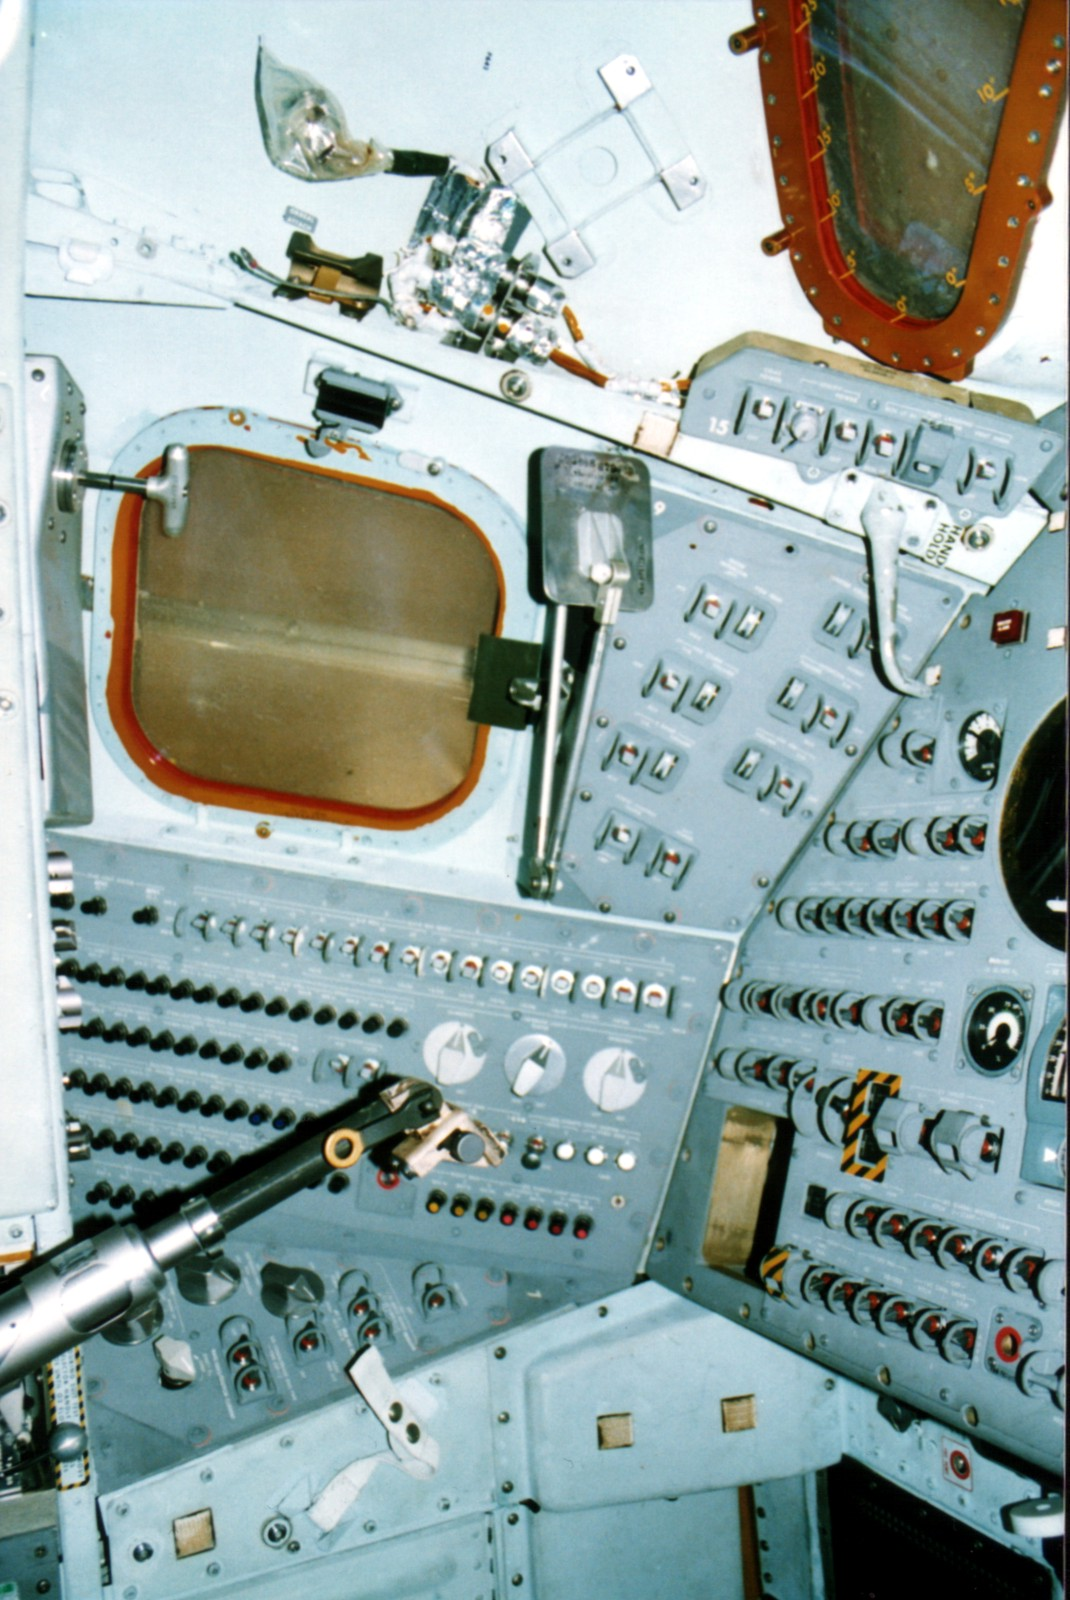 apollo capsule control panel - photo #10